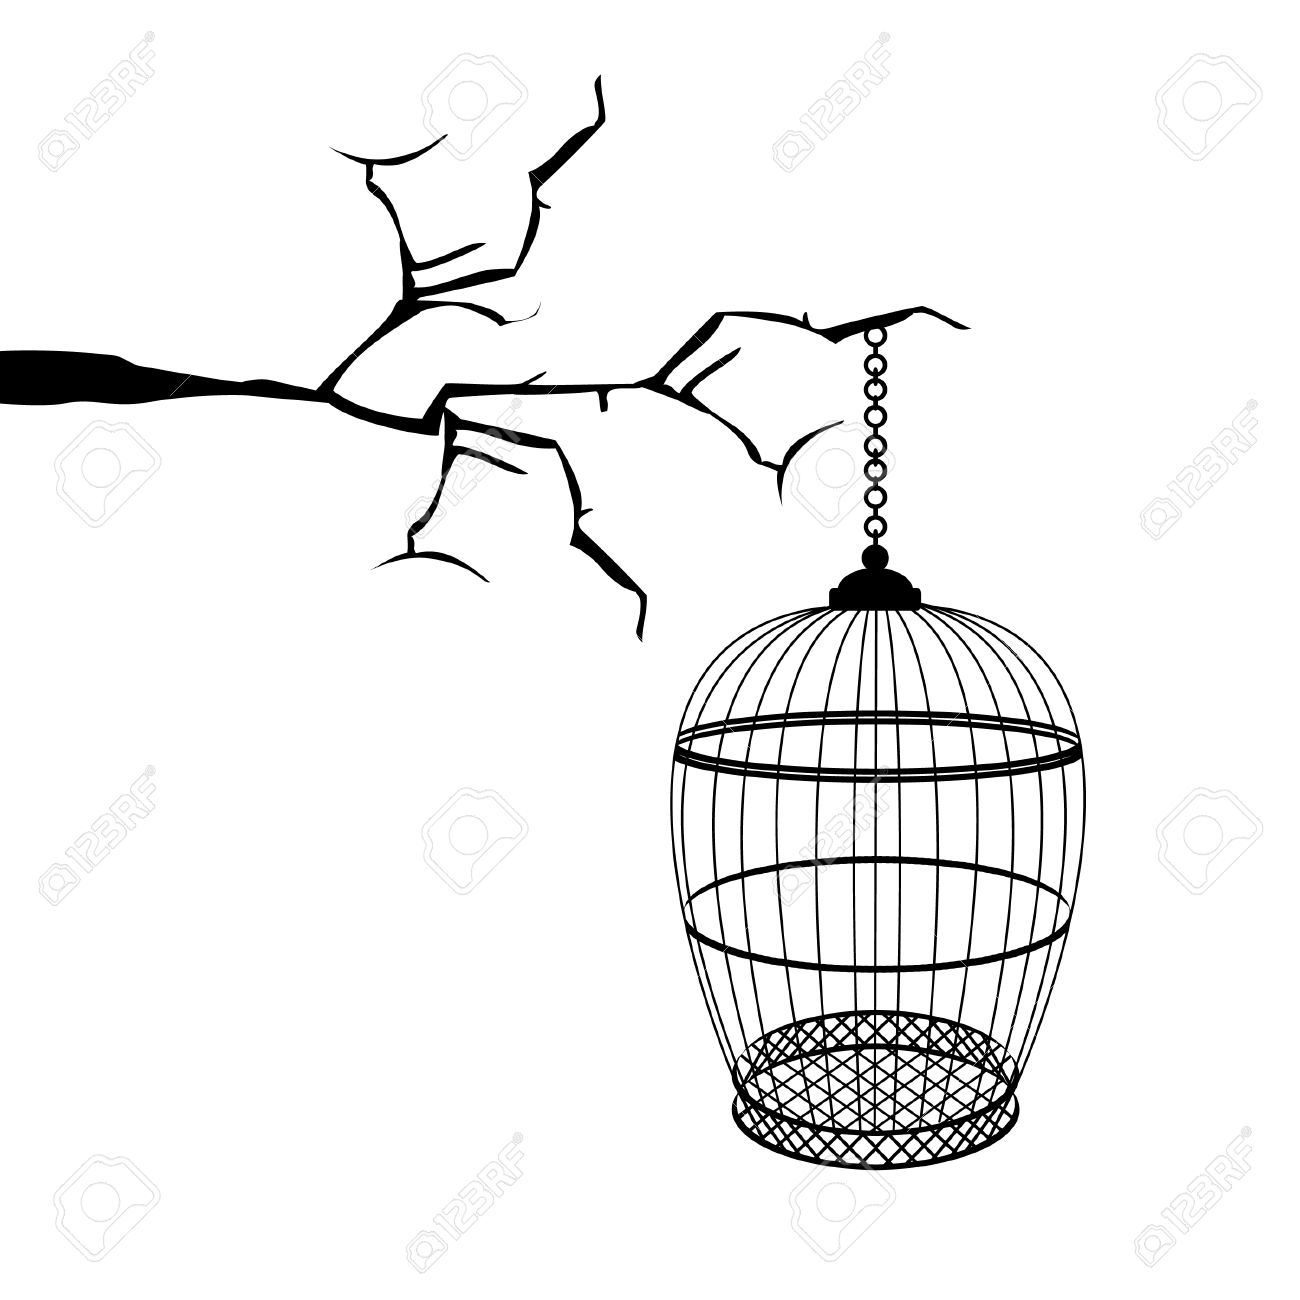 1300x1300 Black Birdcage Hanging On Tree Branch. Birdcage Silhouette